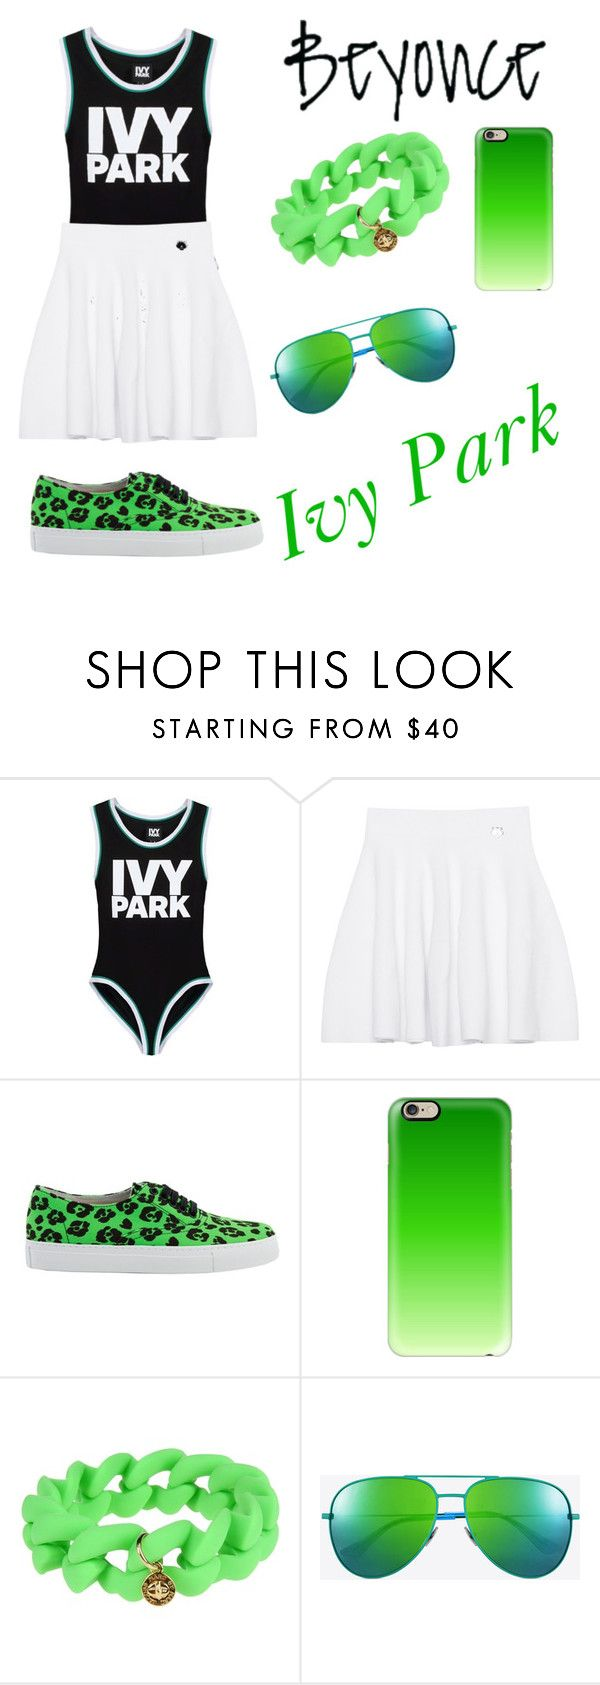 """Look of Beyonce- IVY PARK"" by gabydesigner on Polyvore featuring Ivy Park, Kenzo, Moschino Cheap & Chic, Casetify, Marc by Marc Jacobs and Yves Saint Laurent"